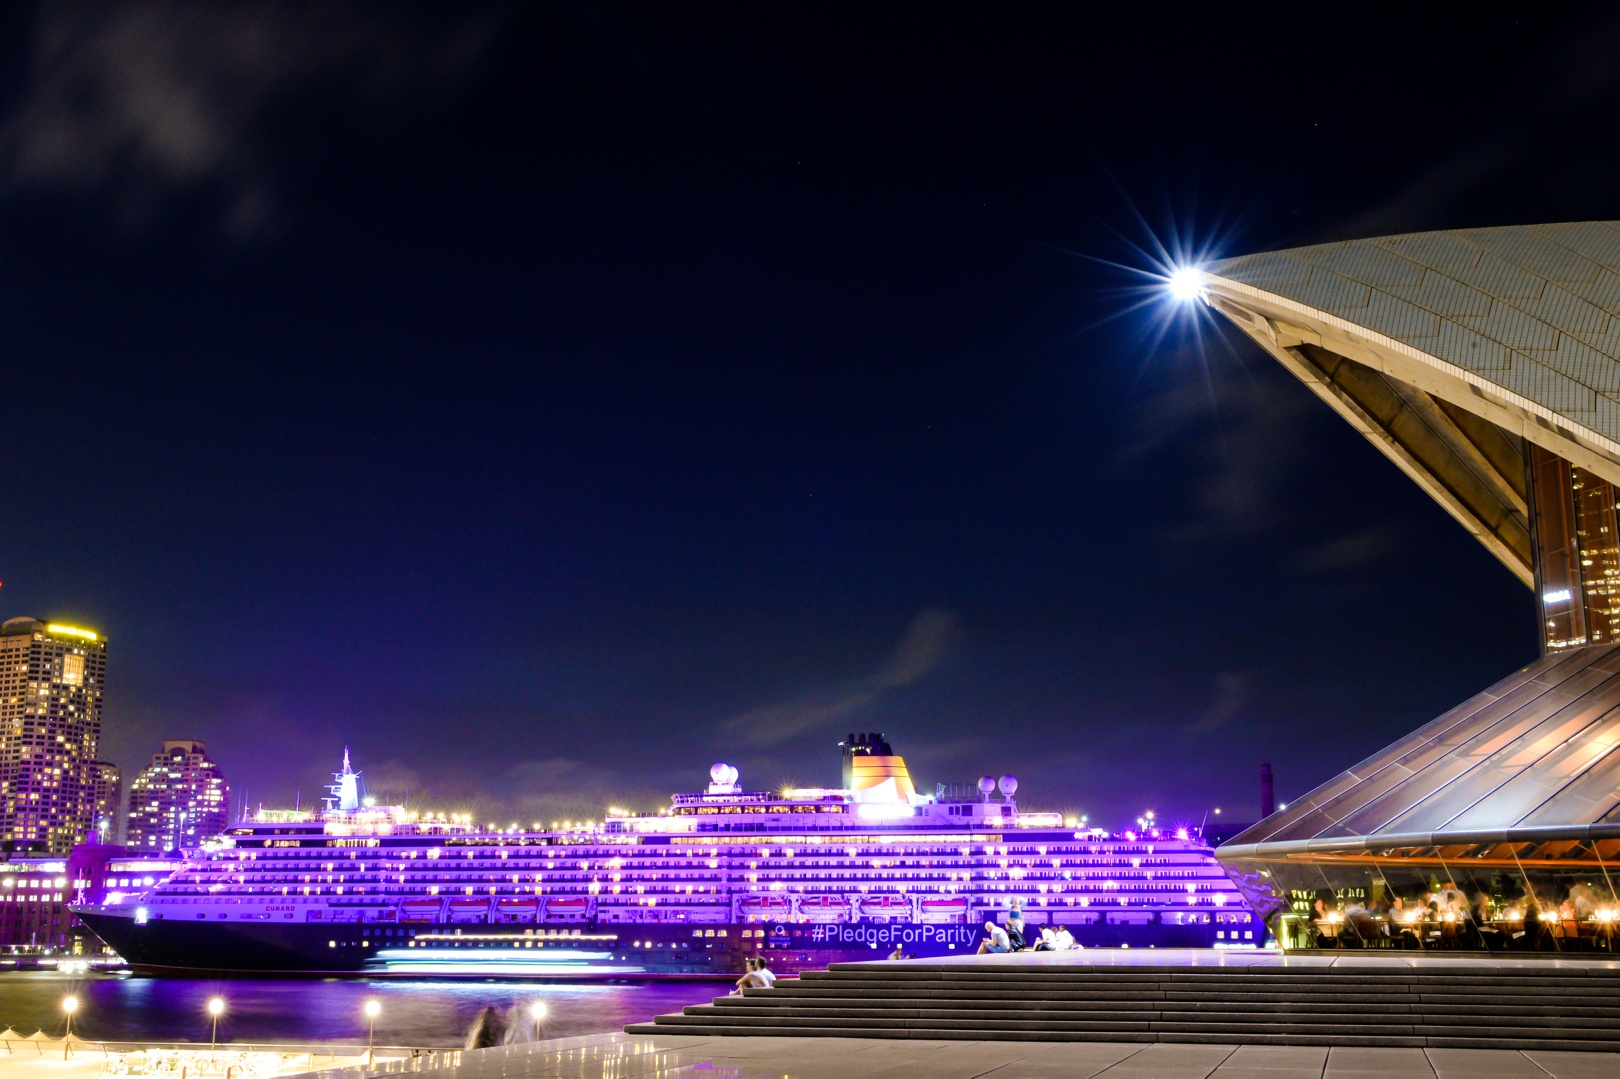 Queen Victoria bathed in purple from the Sydney Opera House.